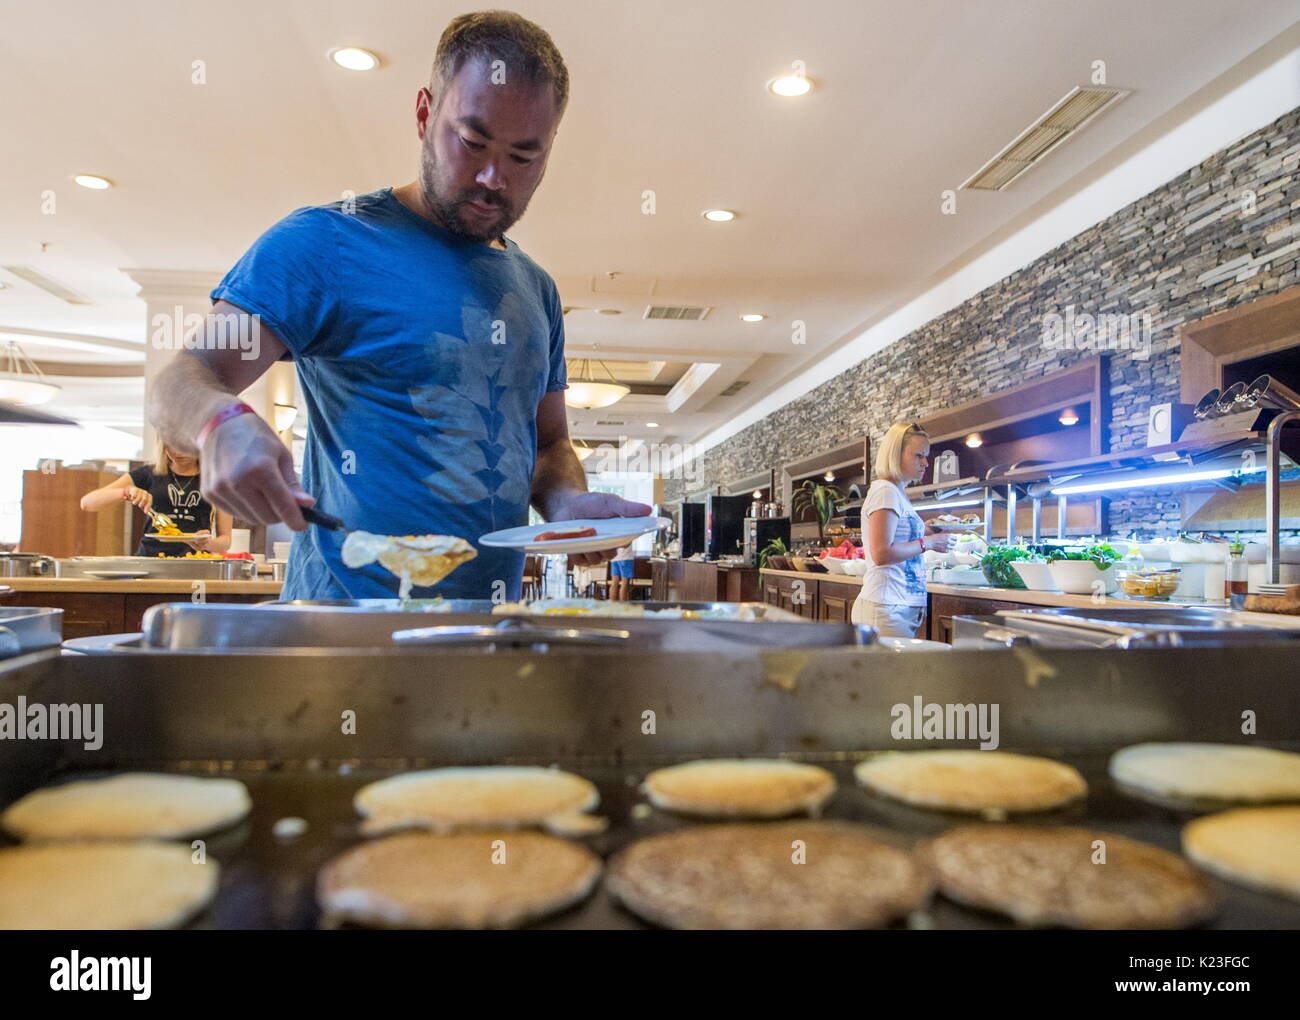 Kemer, Turkey. 26th Aug, 2017. A tourist in a buffet at the Meder Resort Hotel. Credit: Sergei Bobylev/TASS/Alamy Live News - Stock Image